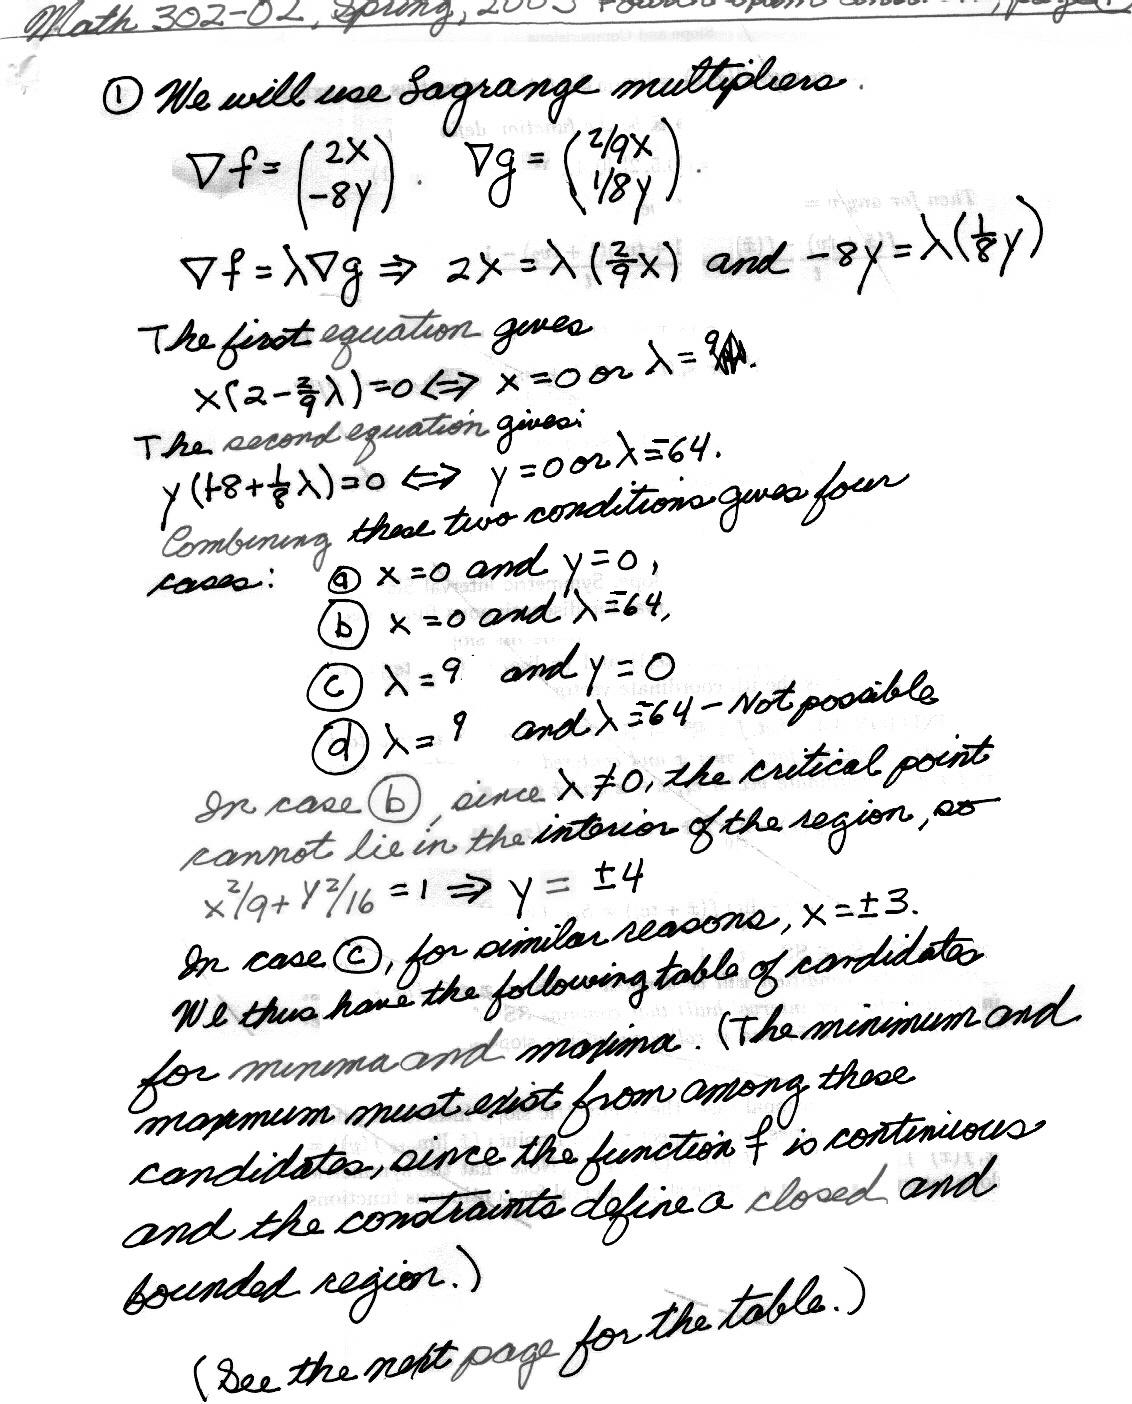 Math 302-02, Springl, 2003 Exam Hints and Answers